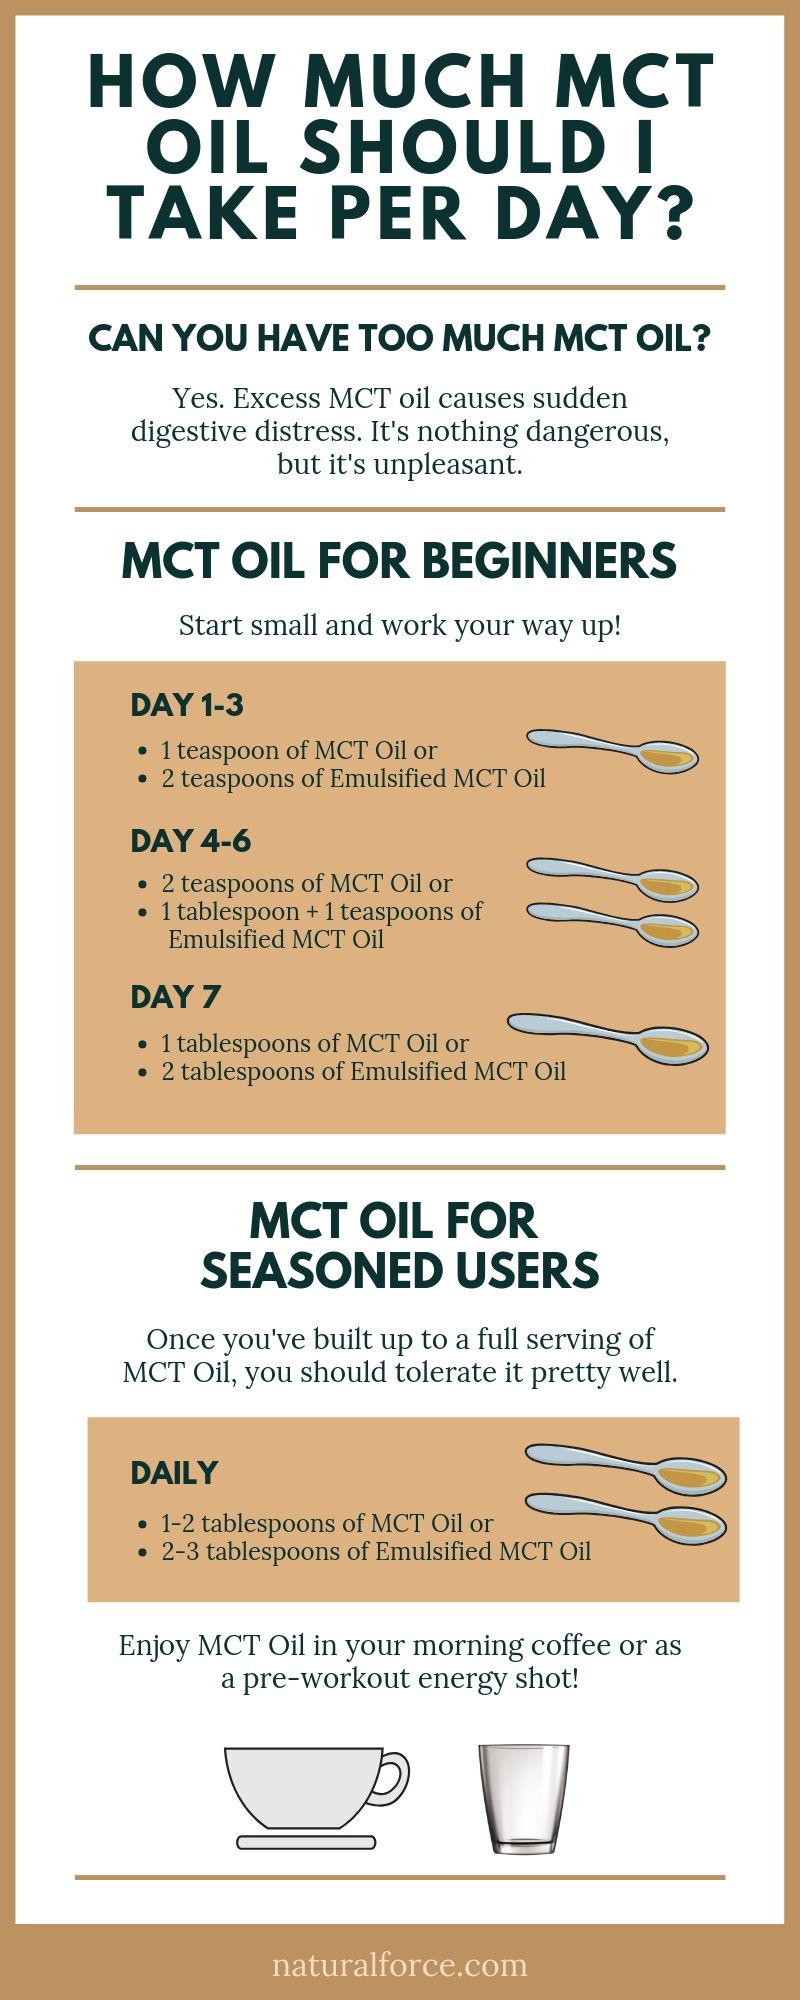 How much mct oil to take per day infographic